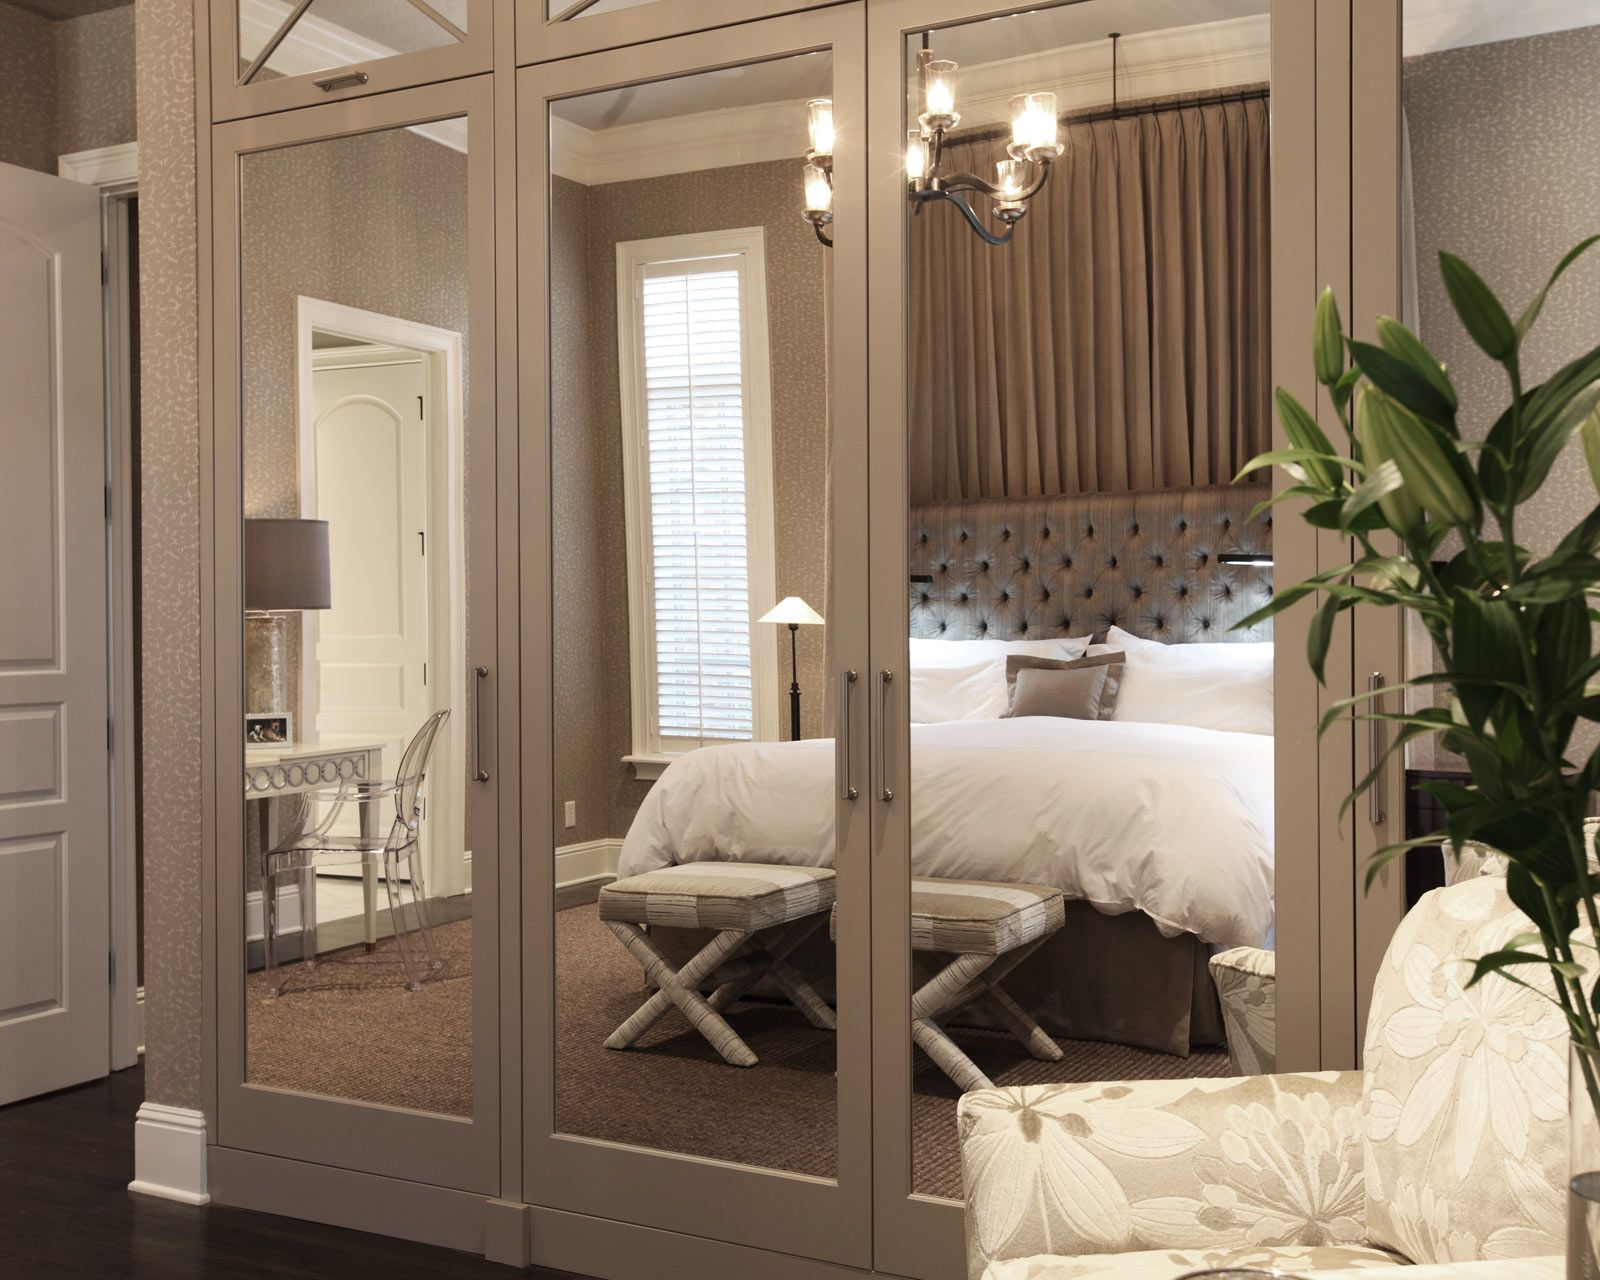 Design Mirrored Closet Doors create a new look for your room with these closet door ideas ideas